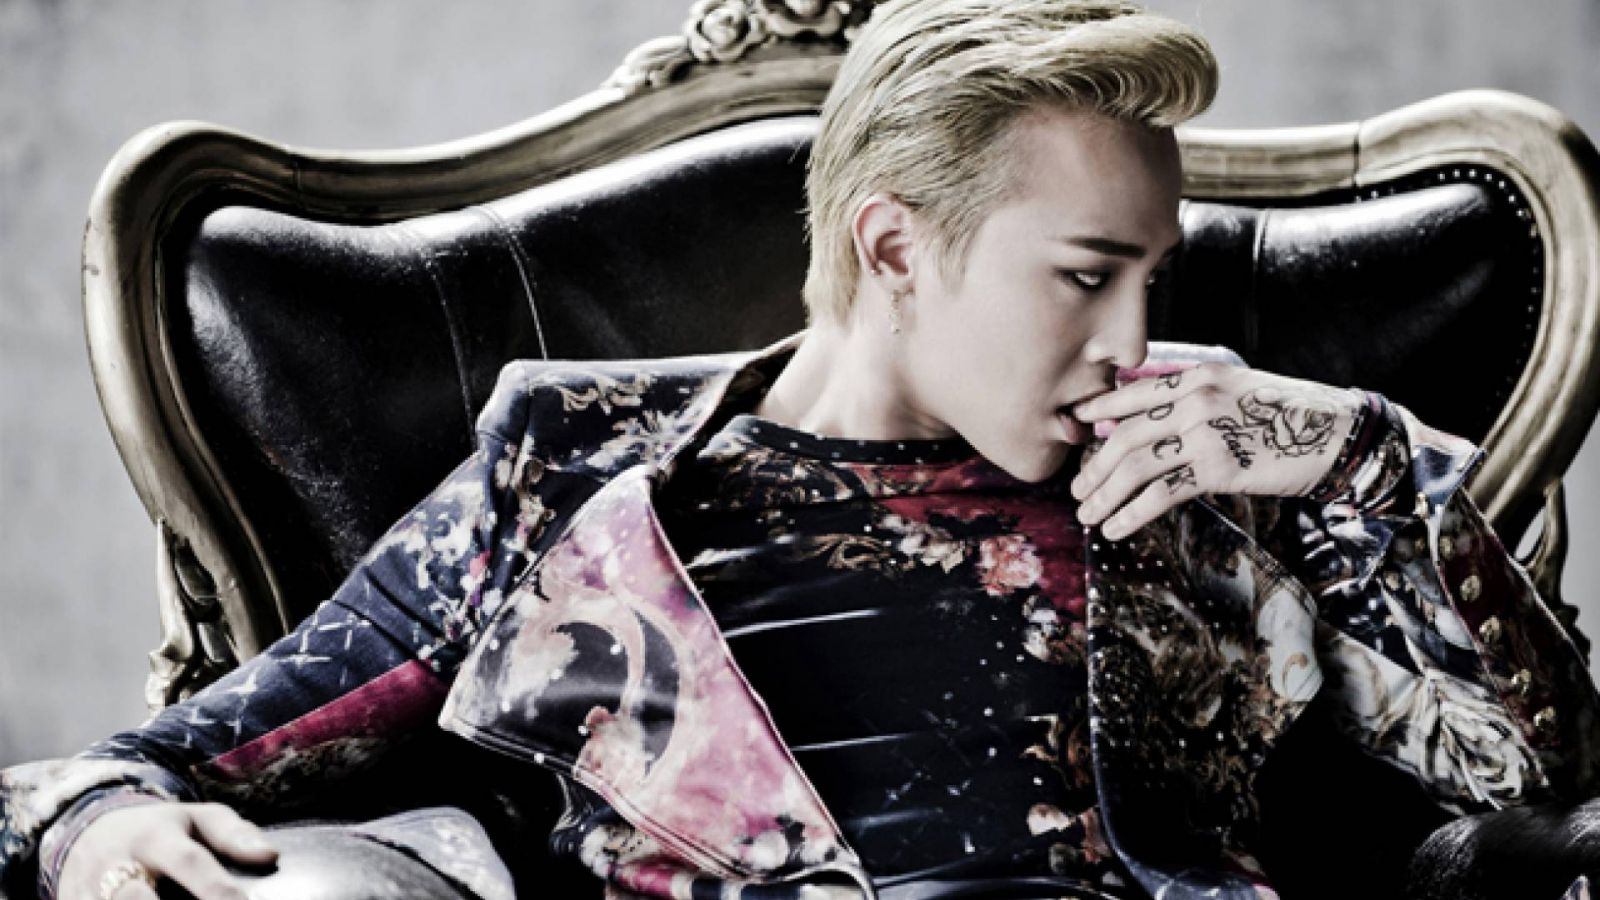 Tournée mondiale pour G-Dragon © YG Entertainment